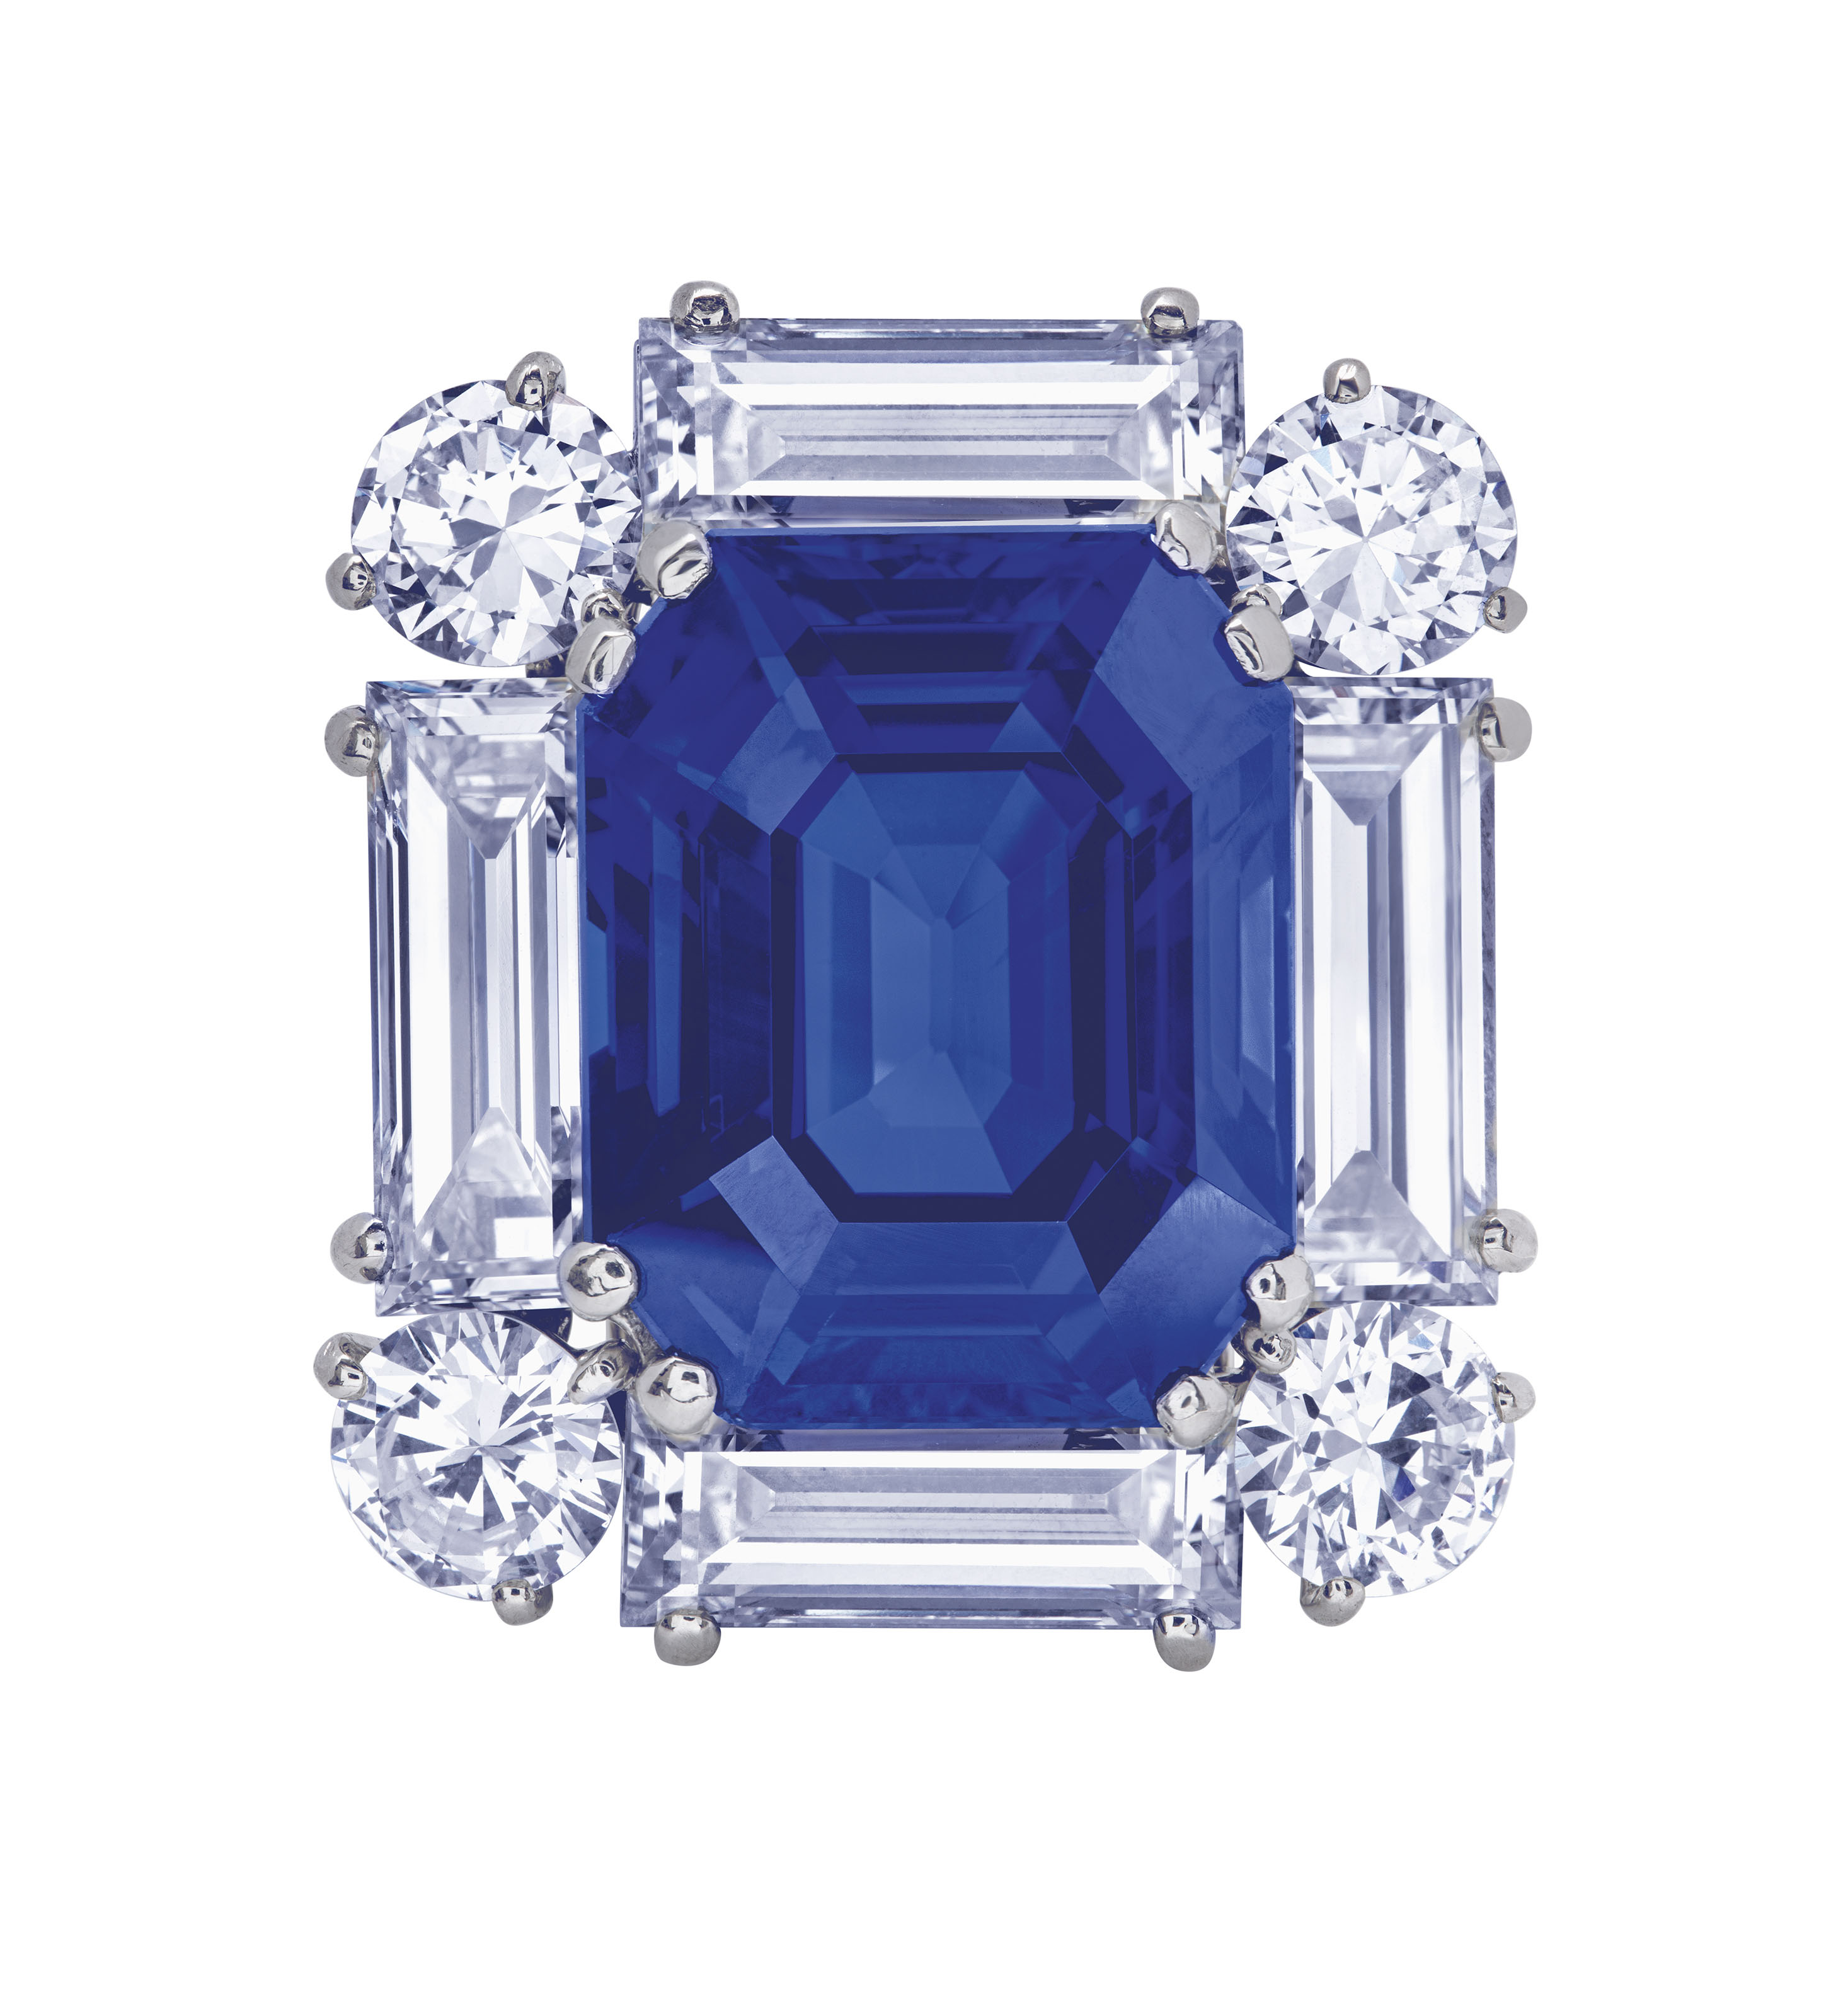 EXCEPTIONAL SAPPHIRE AND DIAMOND BROOCH, CARTIER